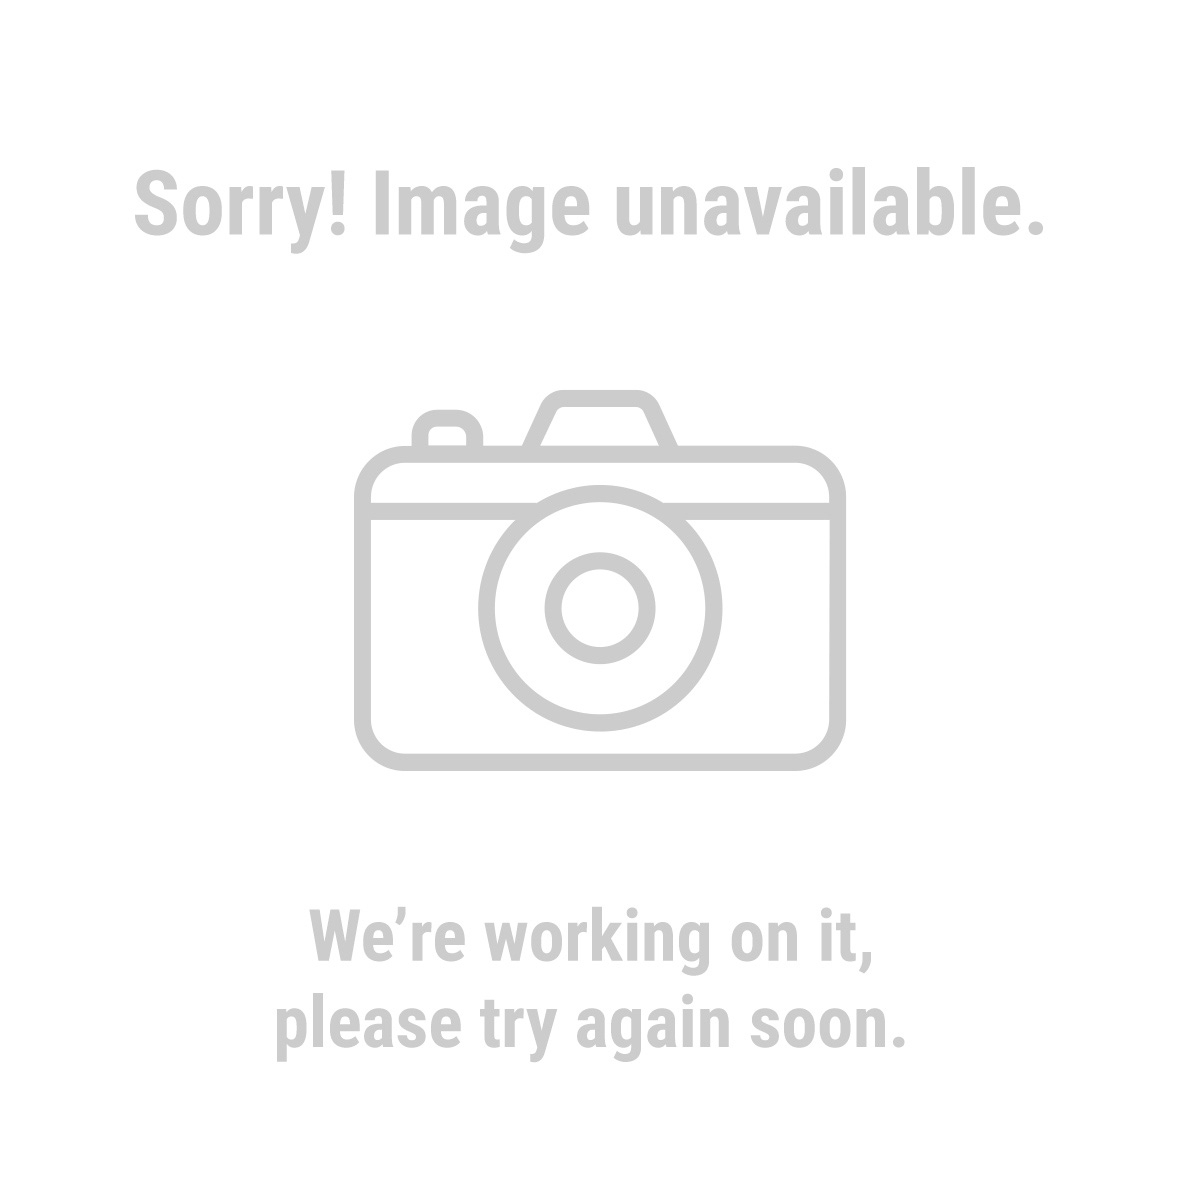 Predator Engines 69730 212 cc OHV Horizontal Shaft Gas Engine - Certified for All States Except California